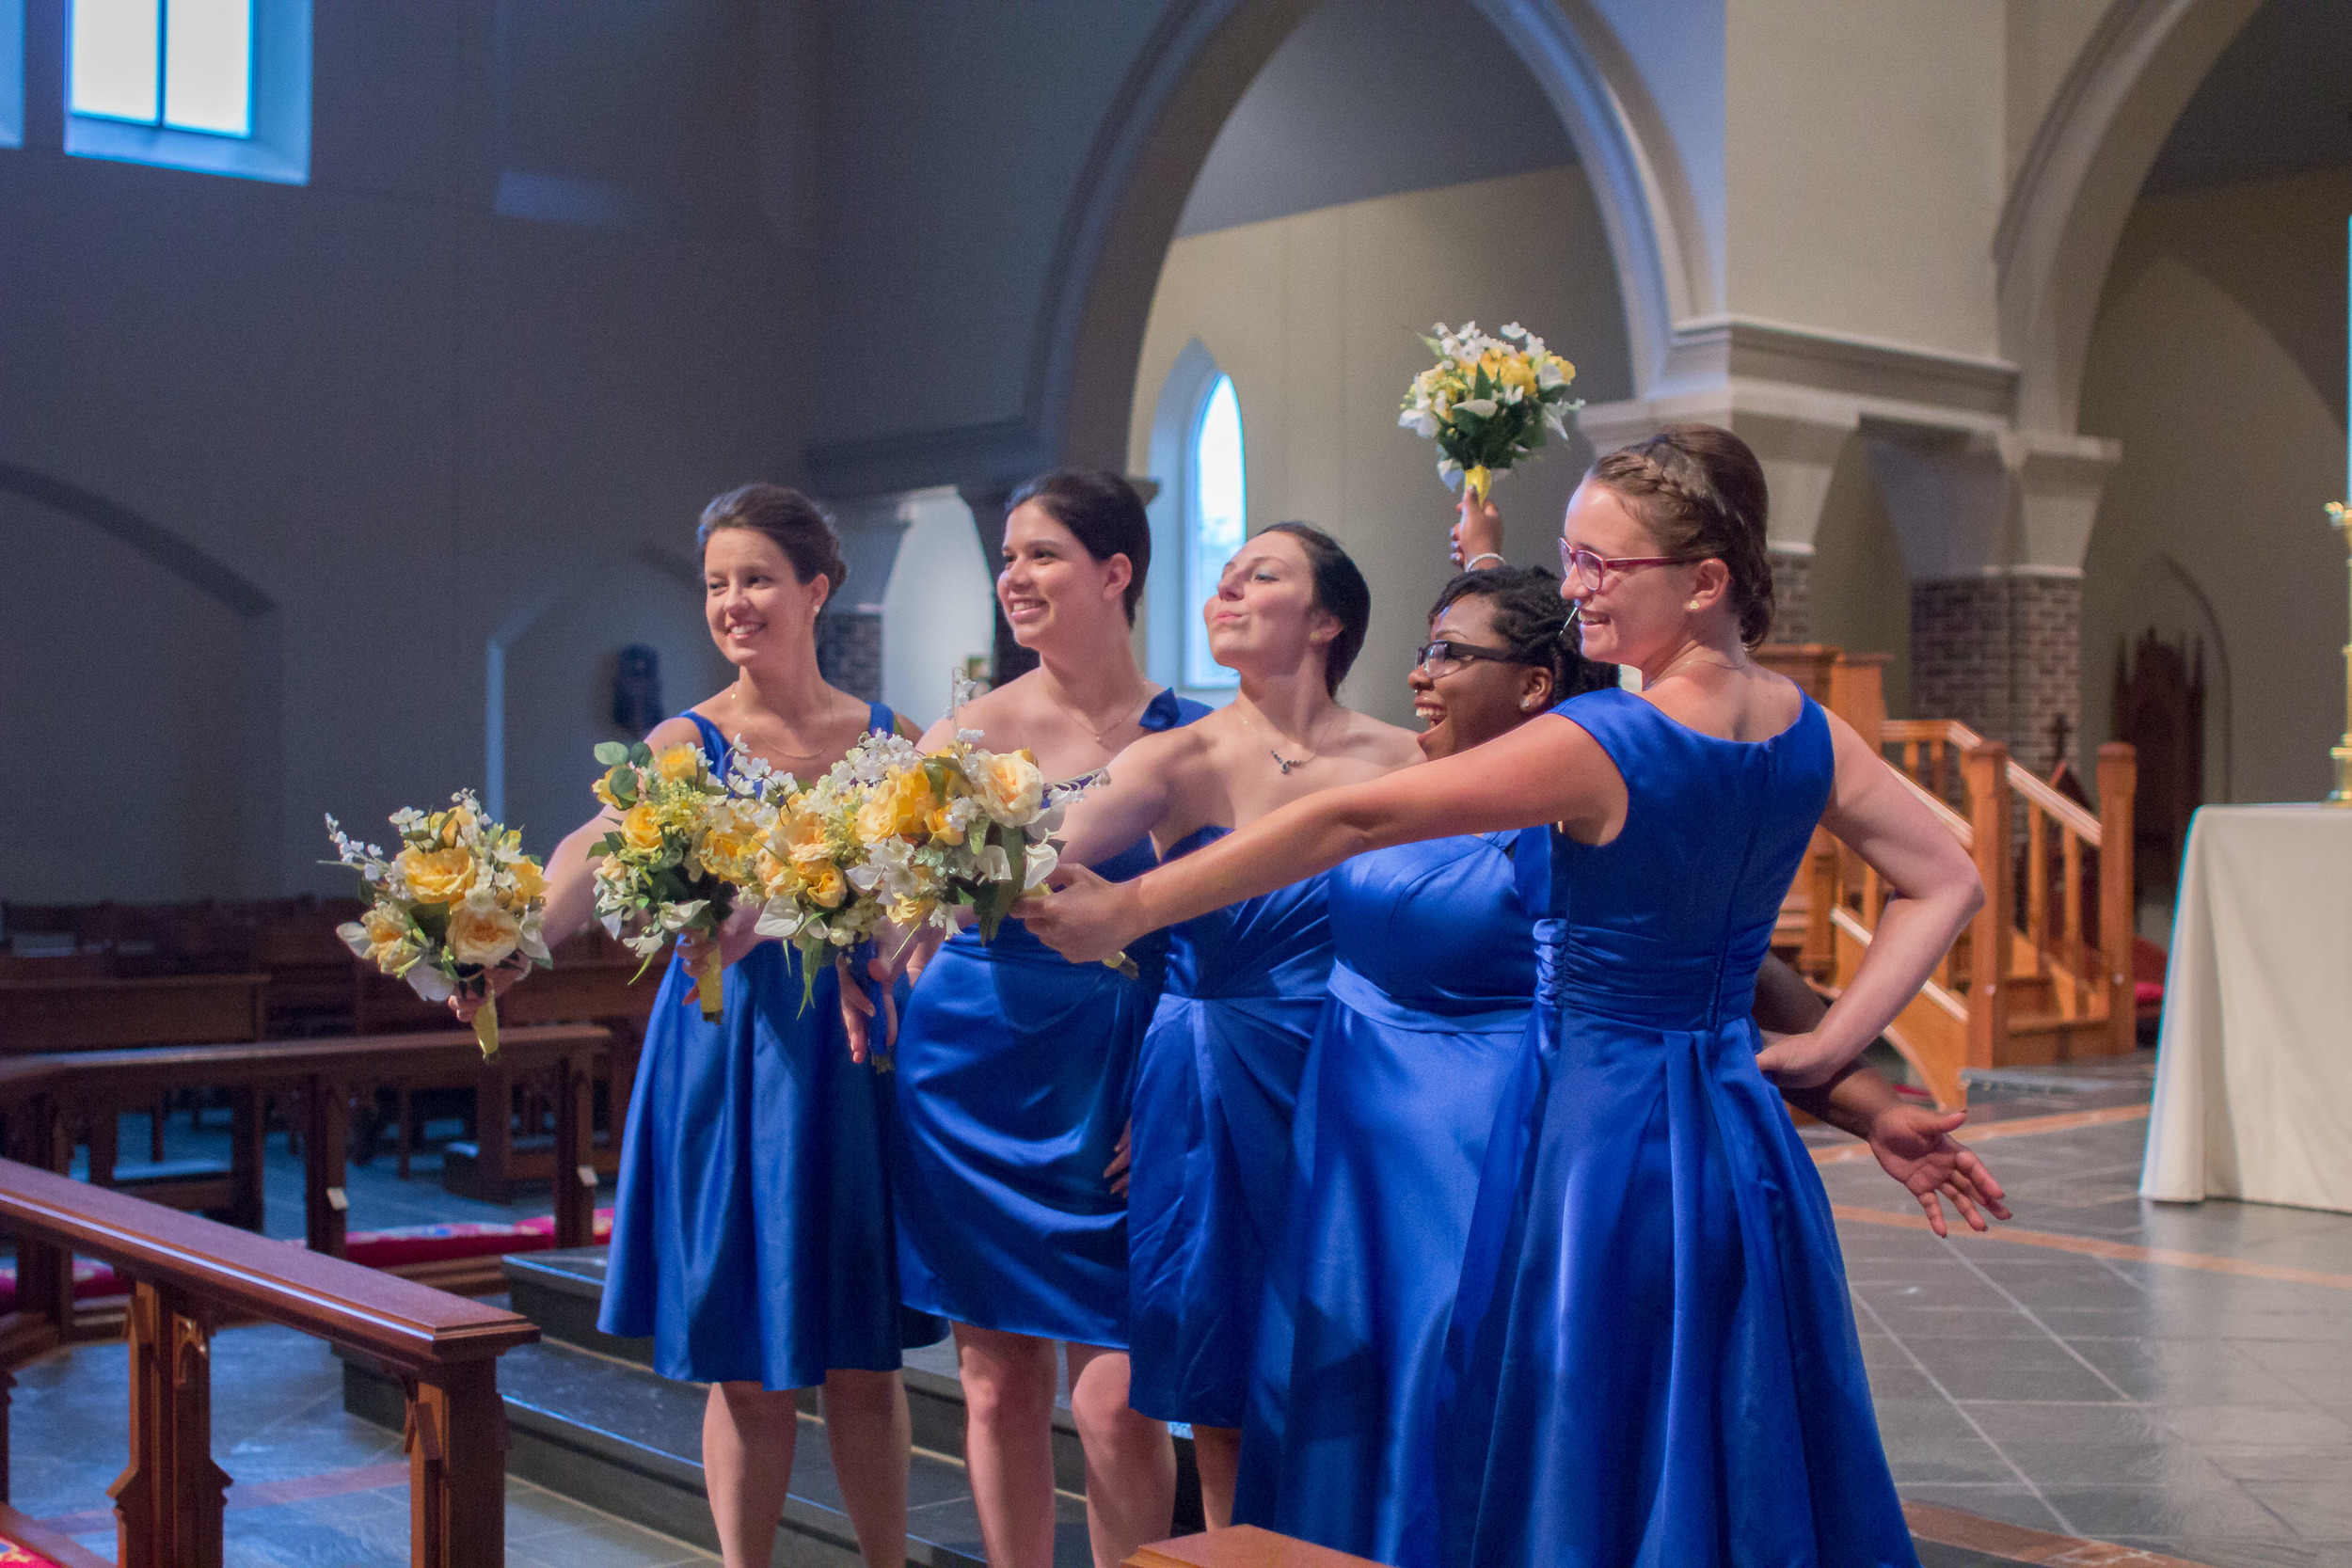 Brides maids beauty and the beast inspired wedding